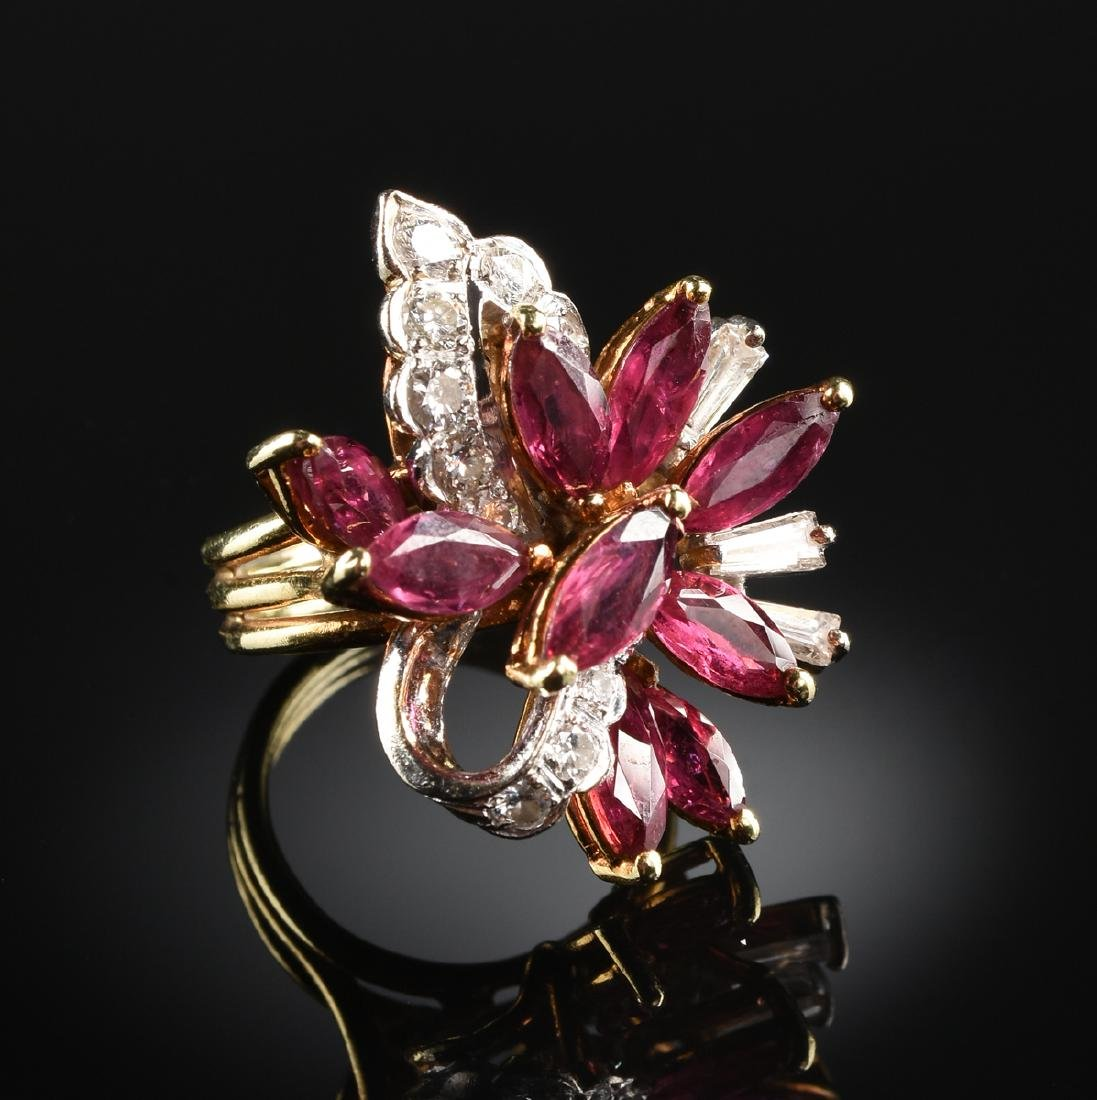 AN 18K TWO TONE GOLD, RUBY, AND DIAMOND LADY'S DINNER